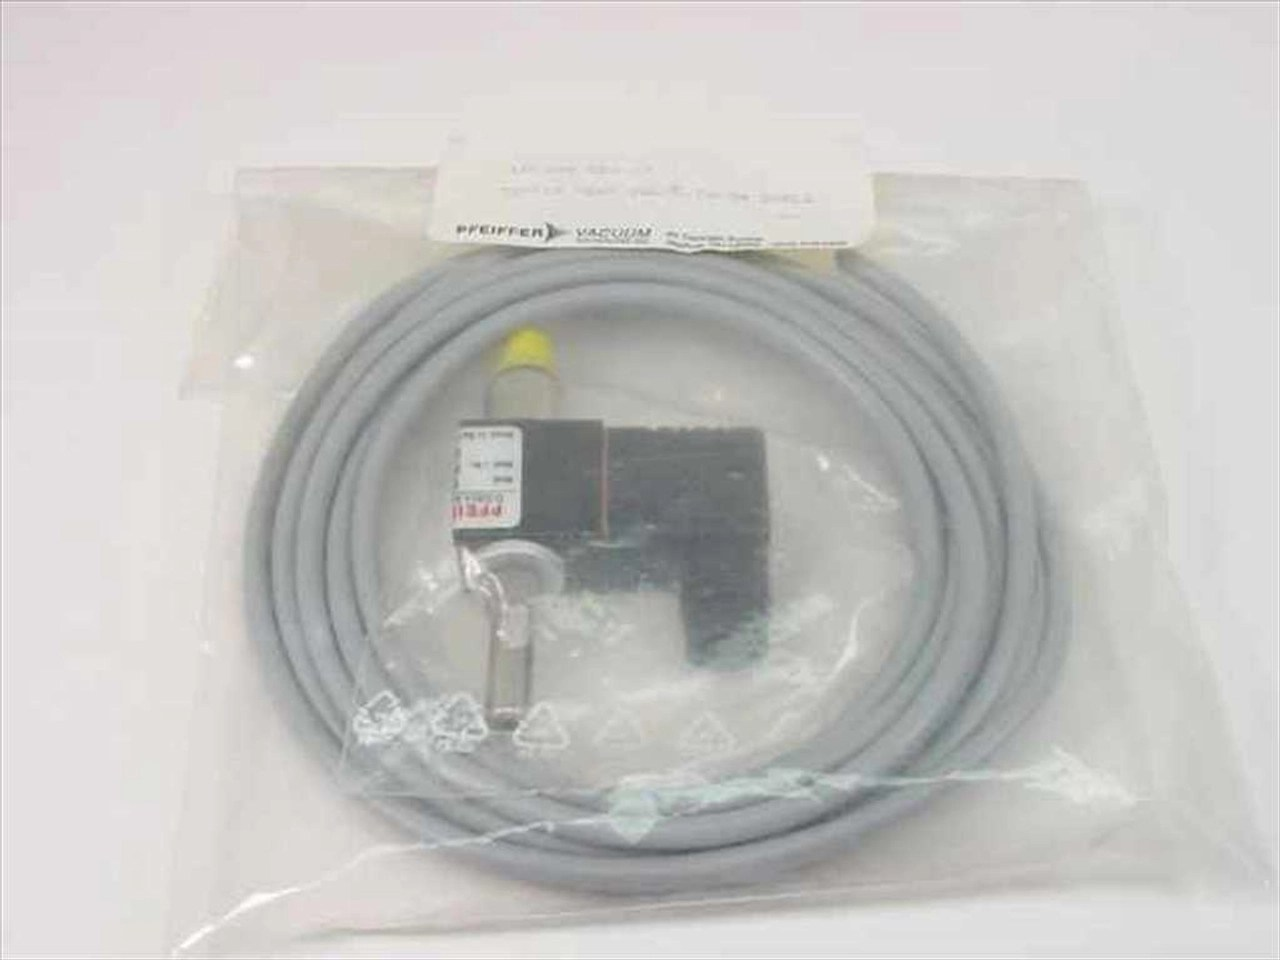 medium resolution of pfeiffer vacuum up 024 020 t tsf012 vent valve w th 3m cable recycledgoods com